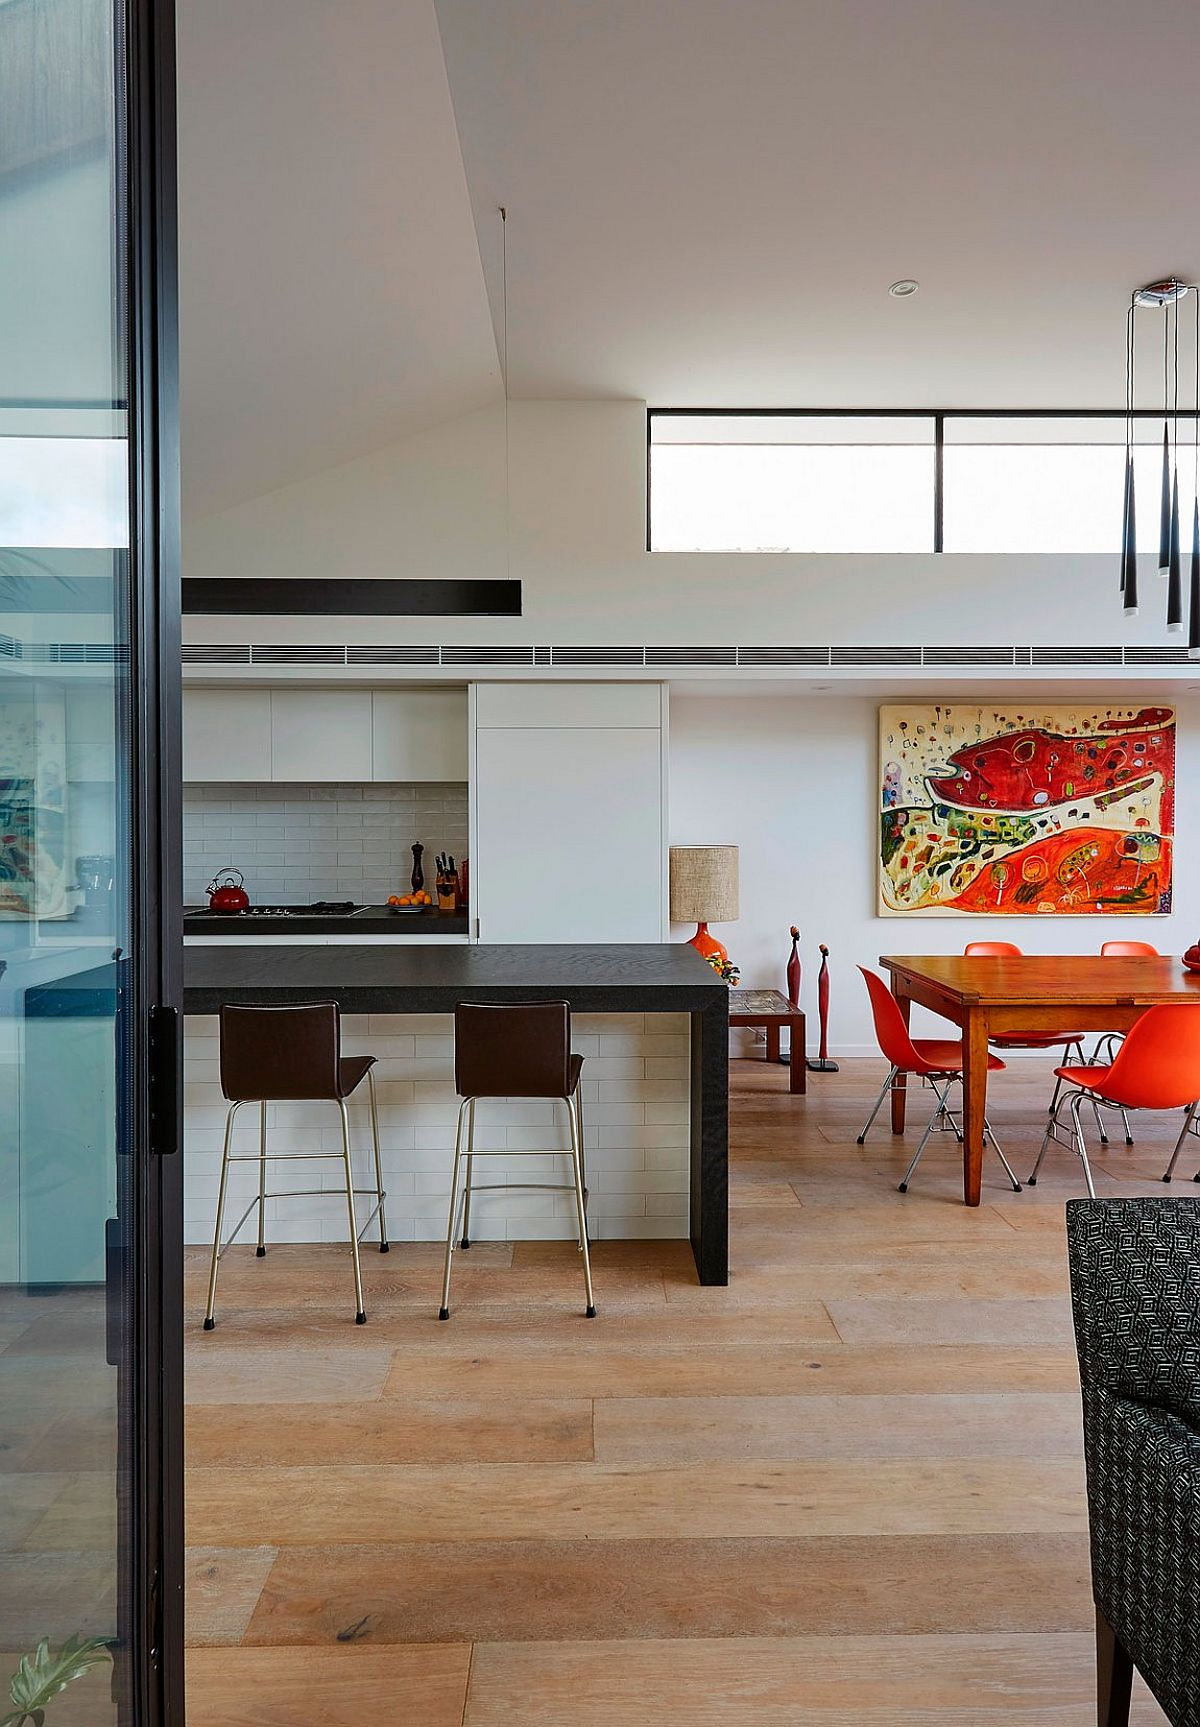 Modern kitchen and dining space in an open plan living